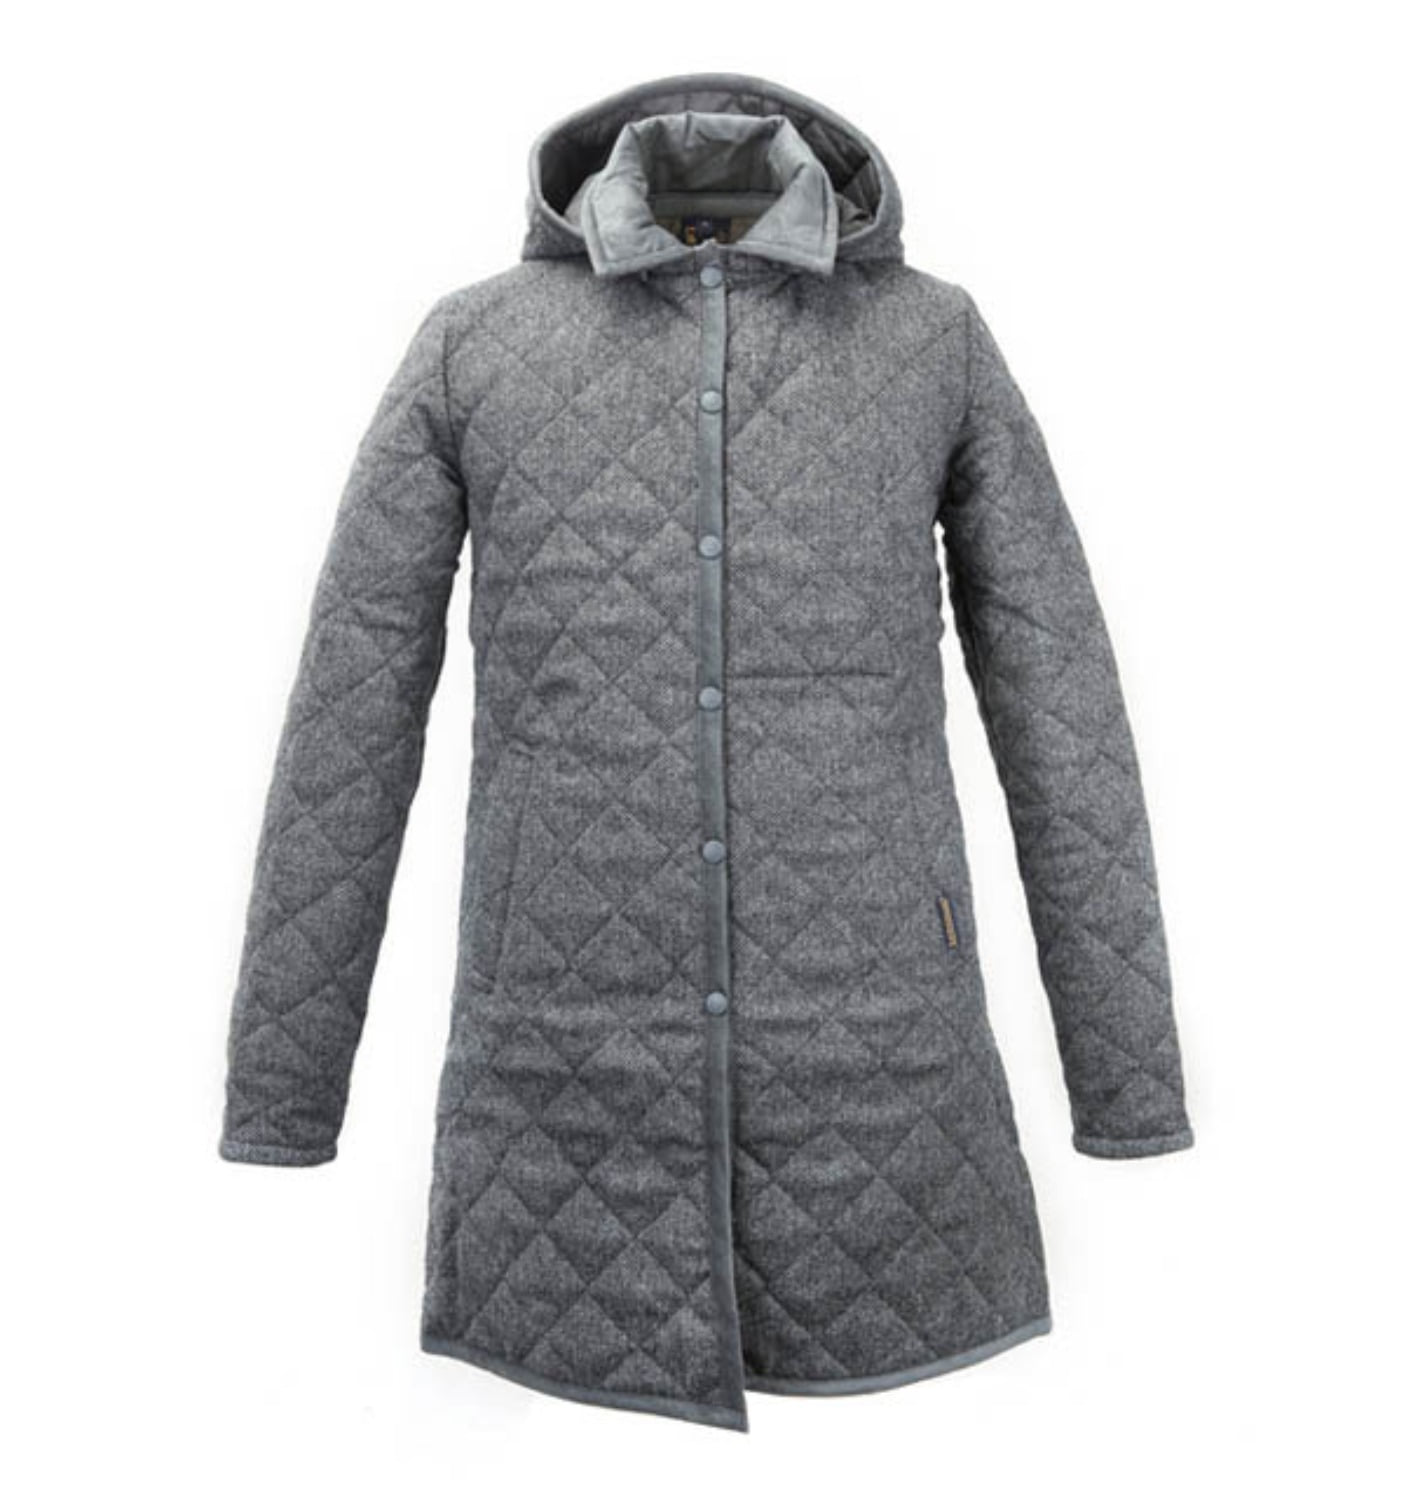 HALSTEAD LADIES WOOL GREY HERRINGBONE